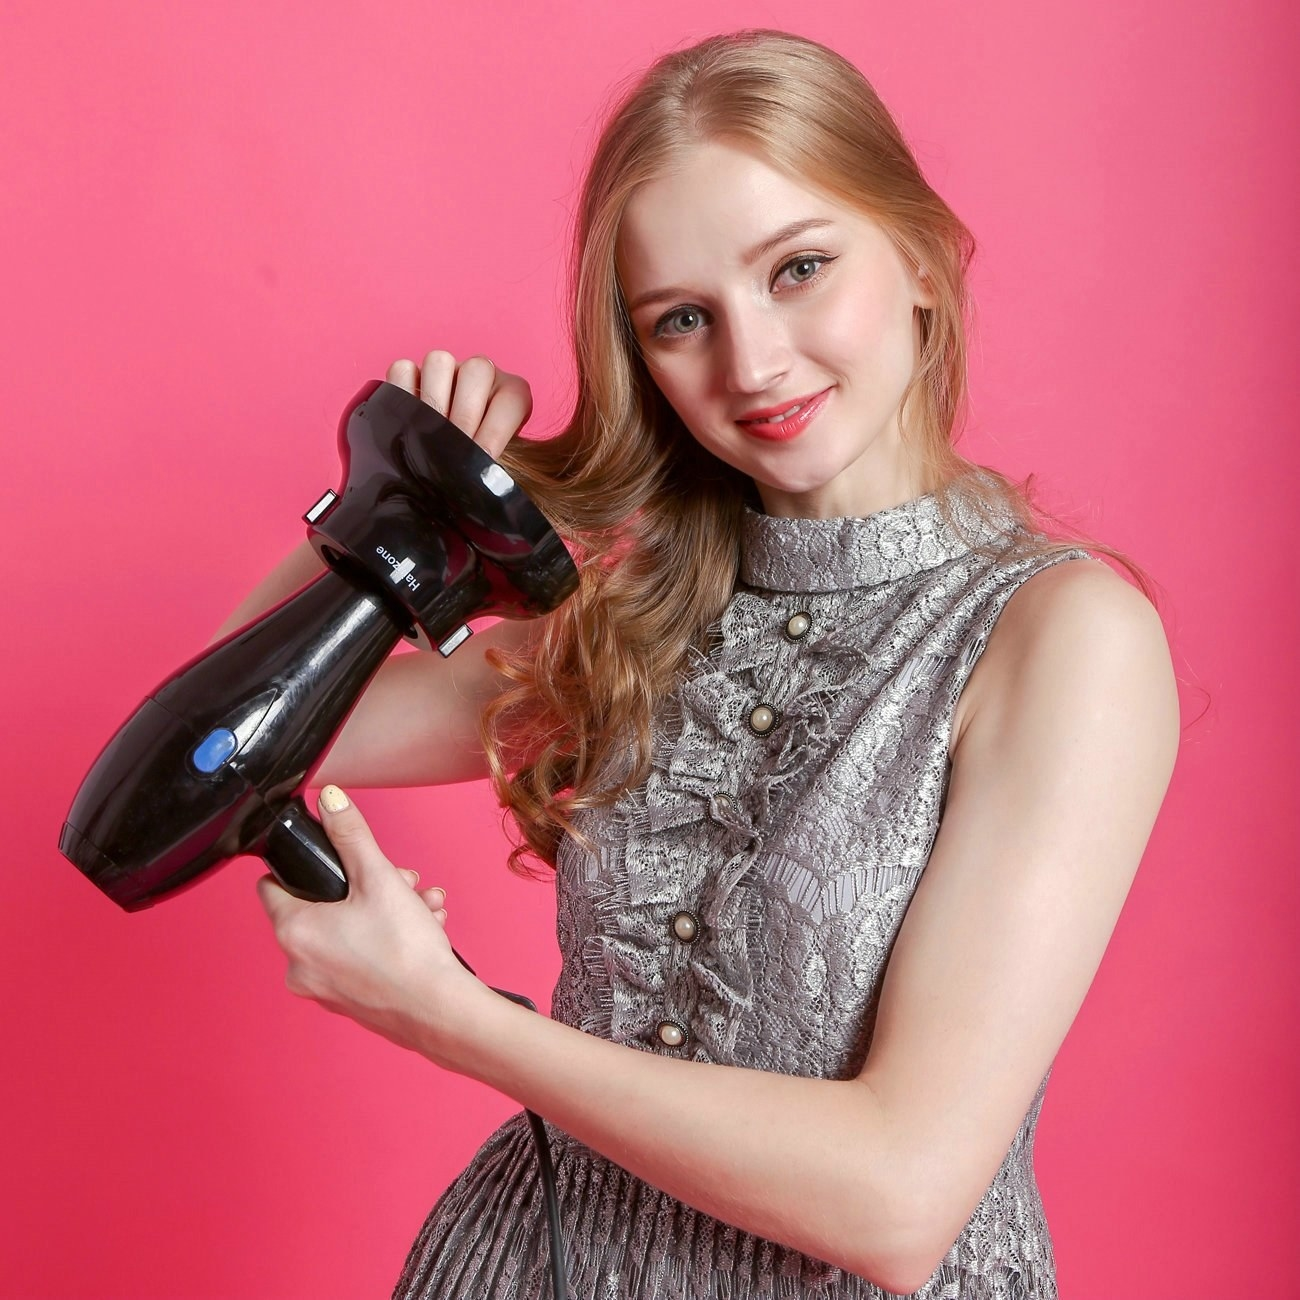 model uses hair dryer with device added to the end